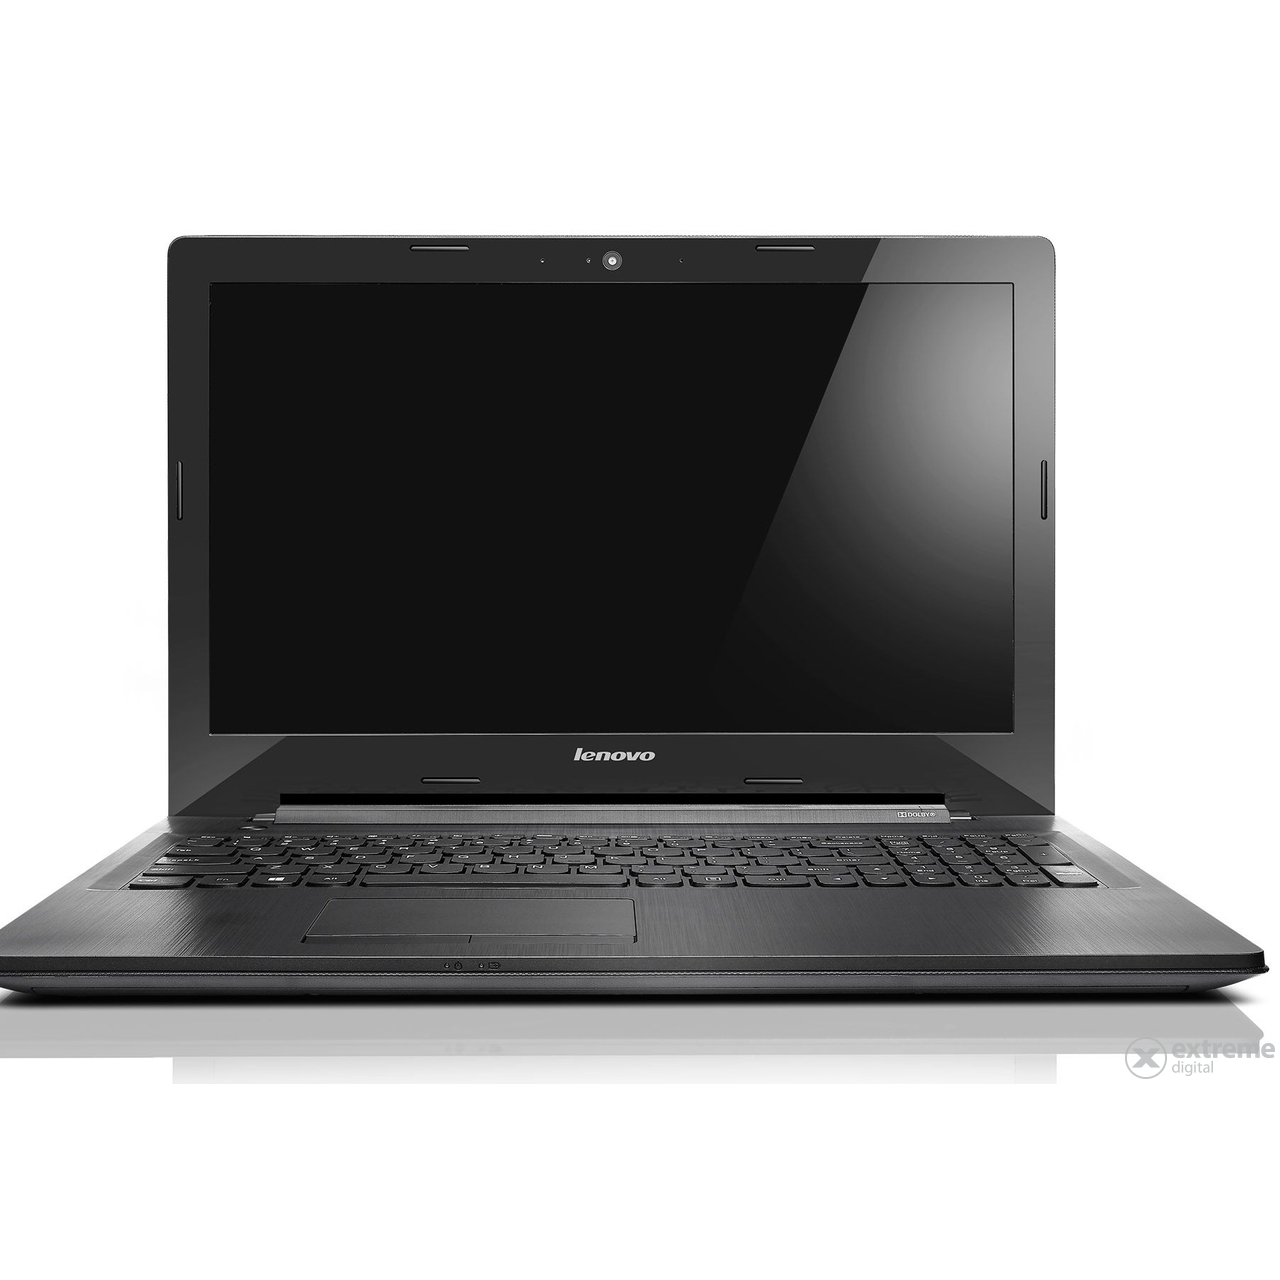 lenovo-g50-45-80e301ashv-notebook-windows-8-1-fekete_d5357a44.jpg